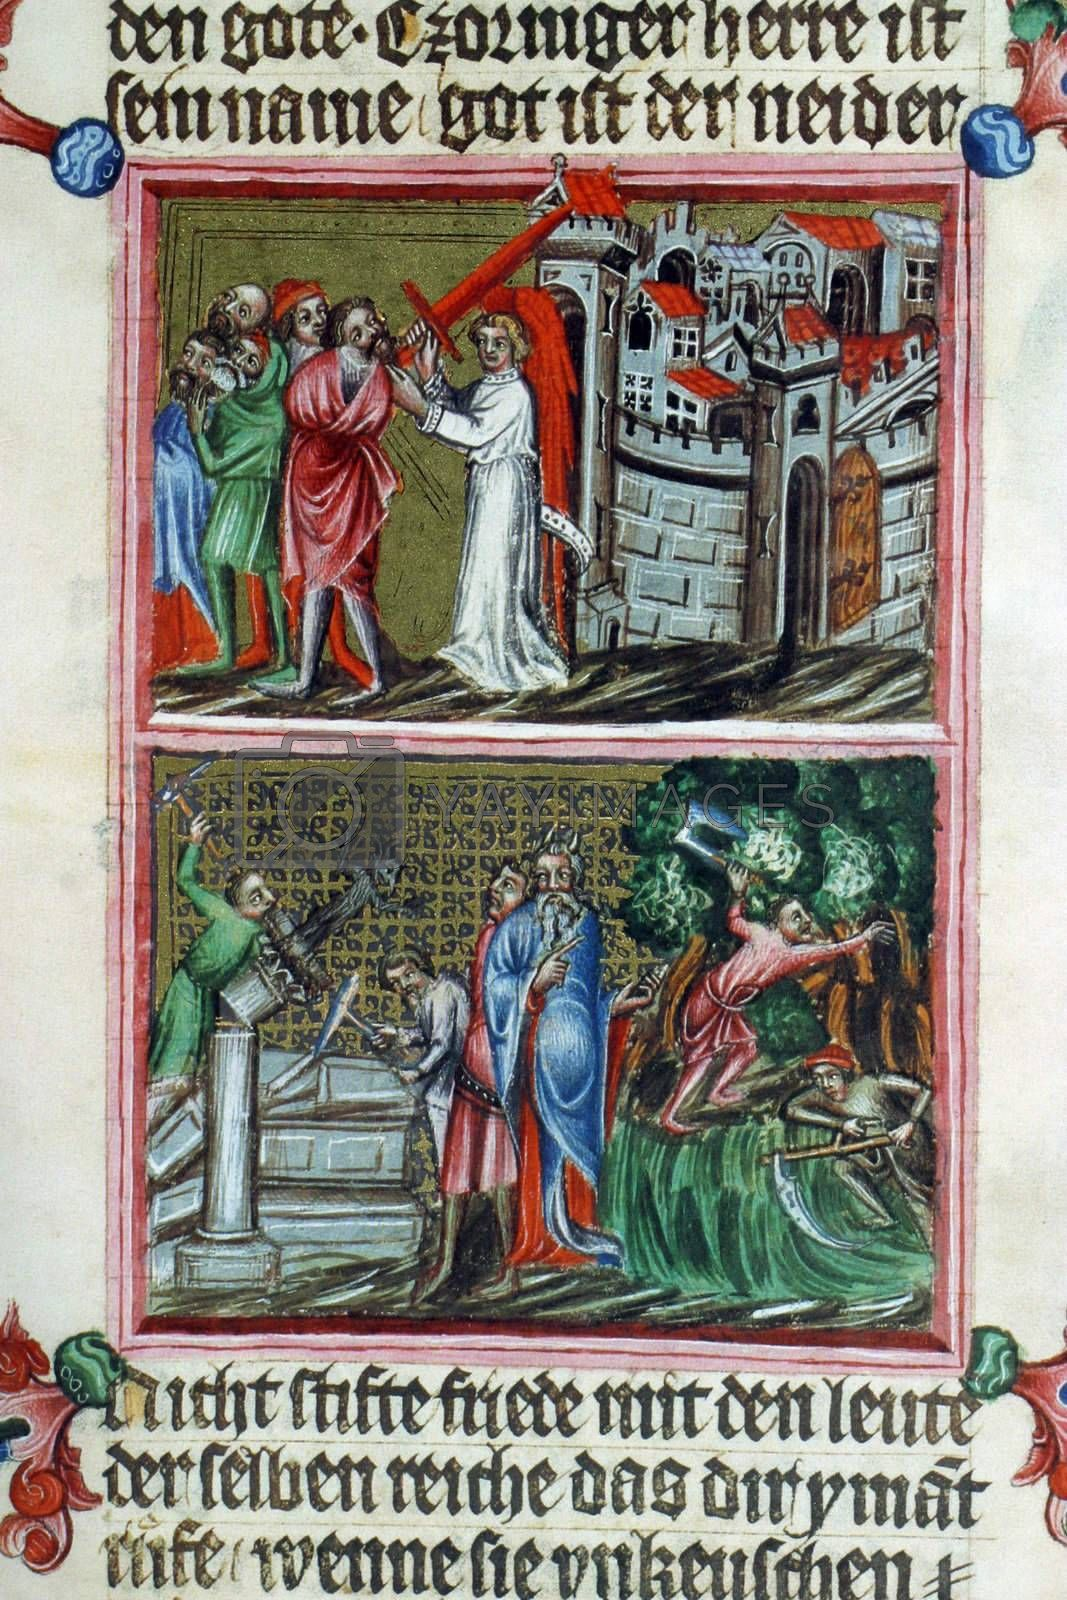 Illustration in an old bible book